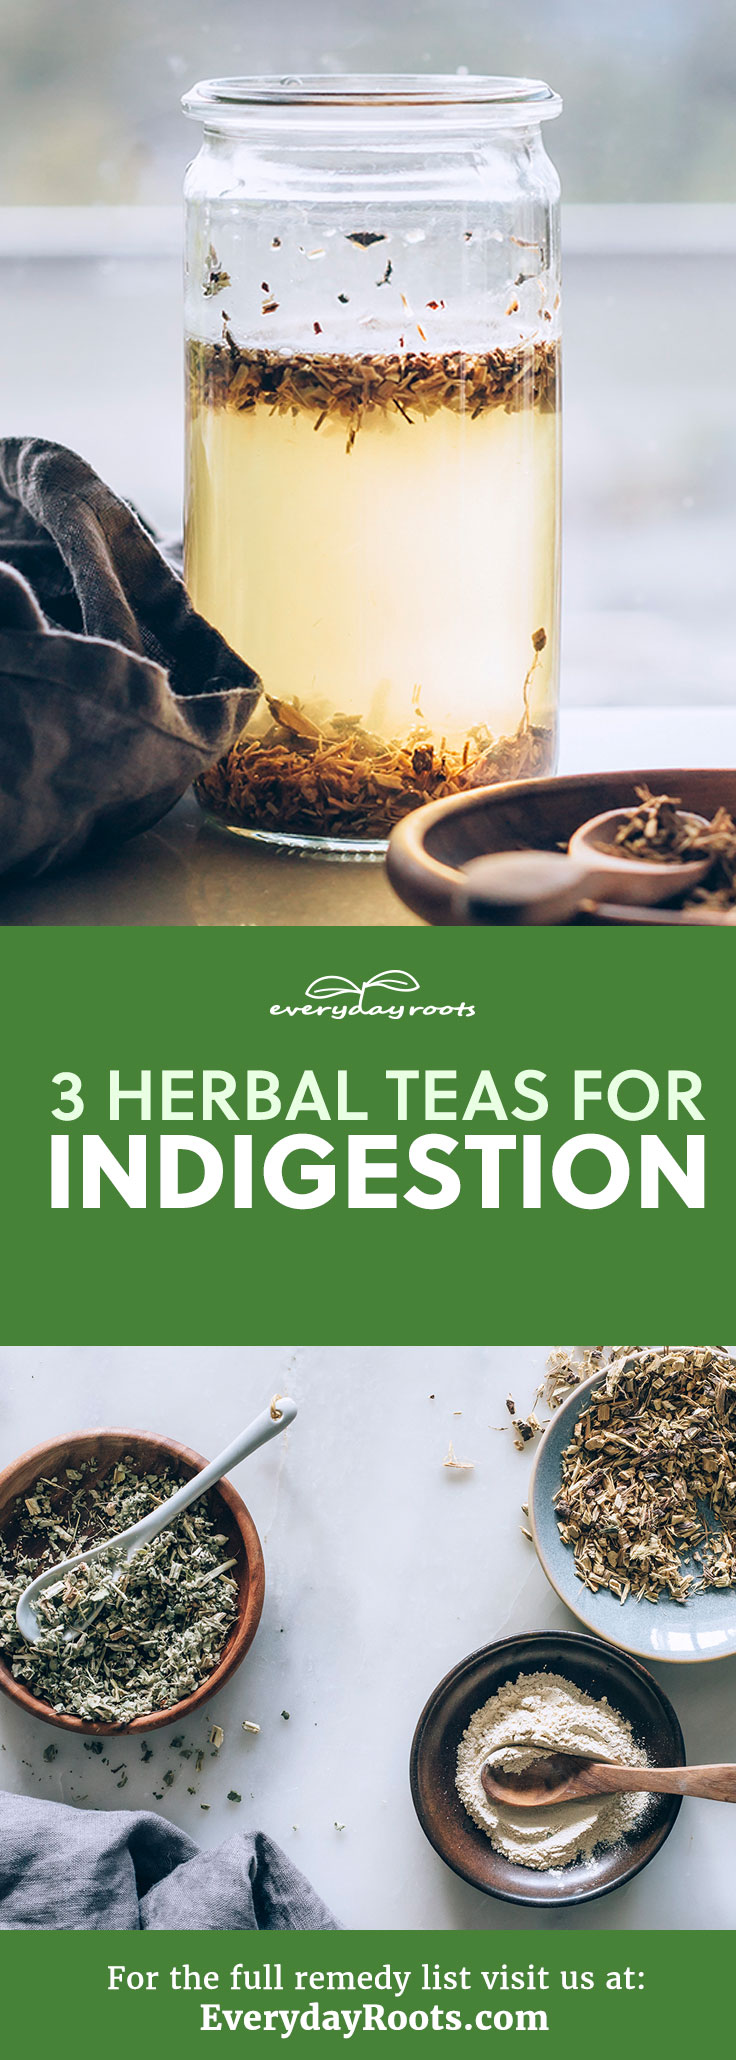 Here are 3 herbal teas to help cure your indigestion woes.